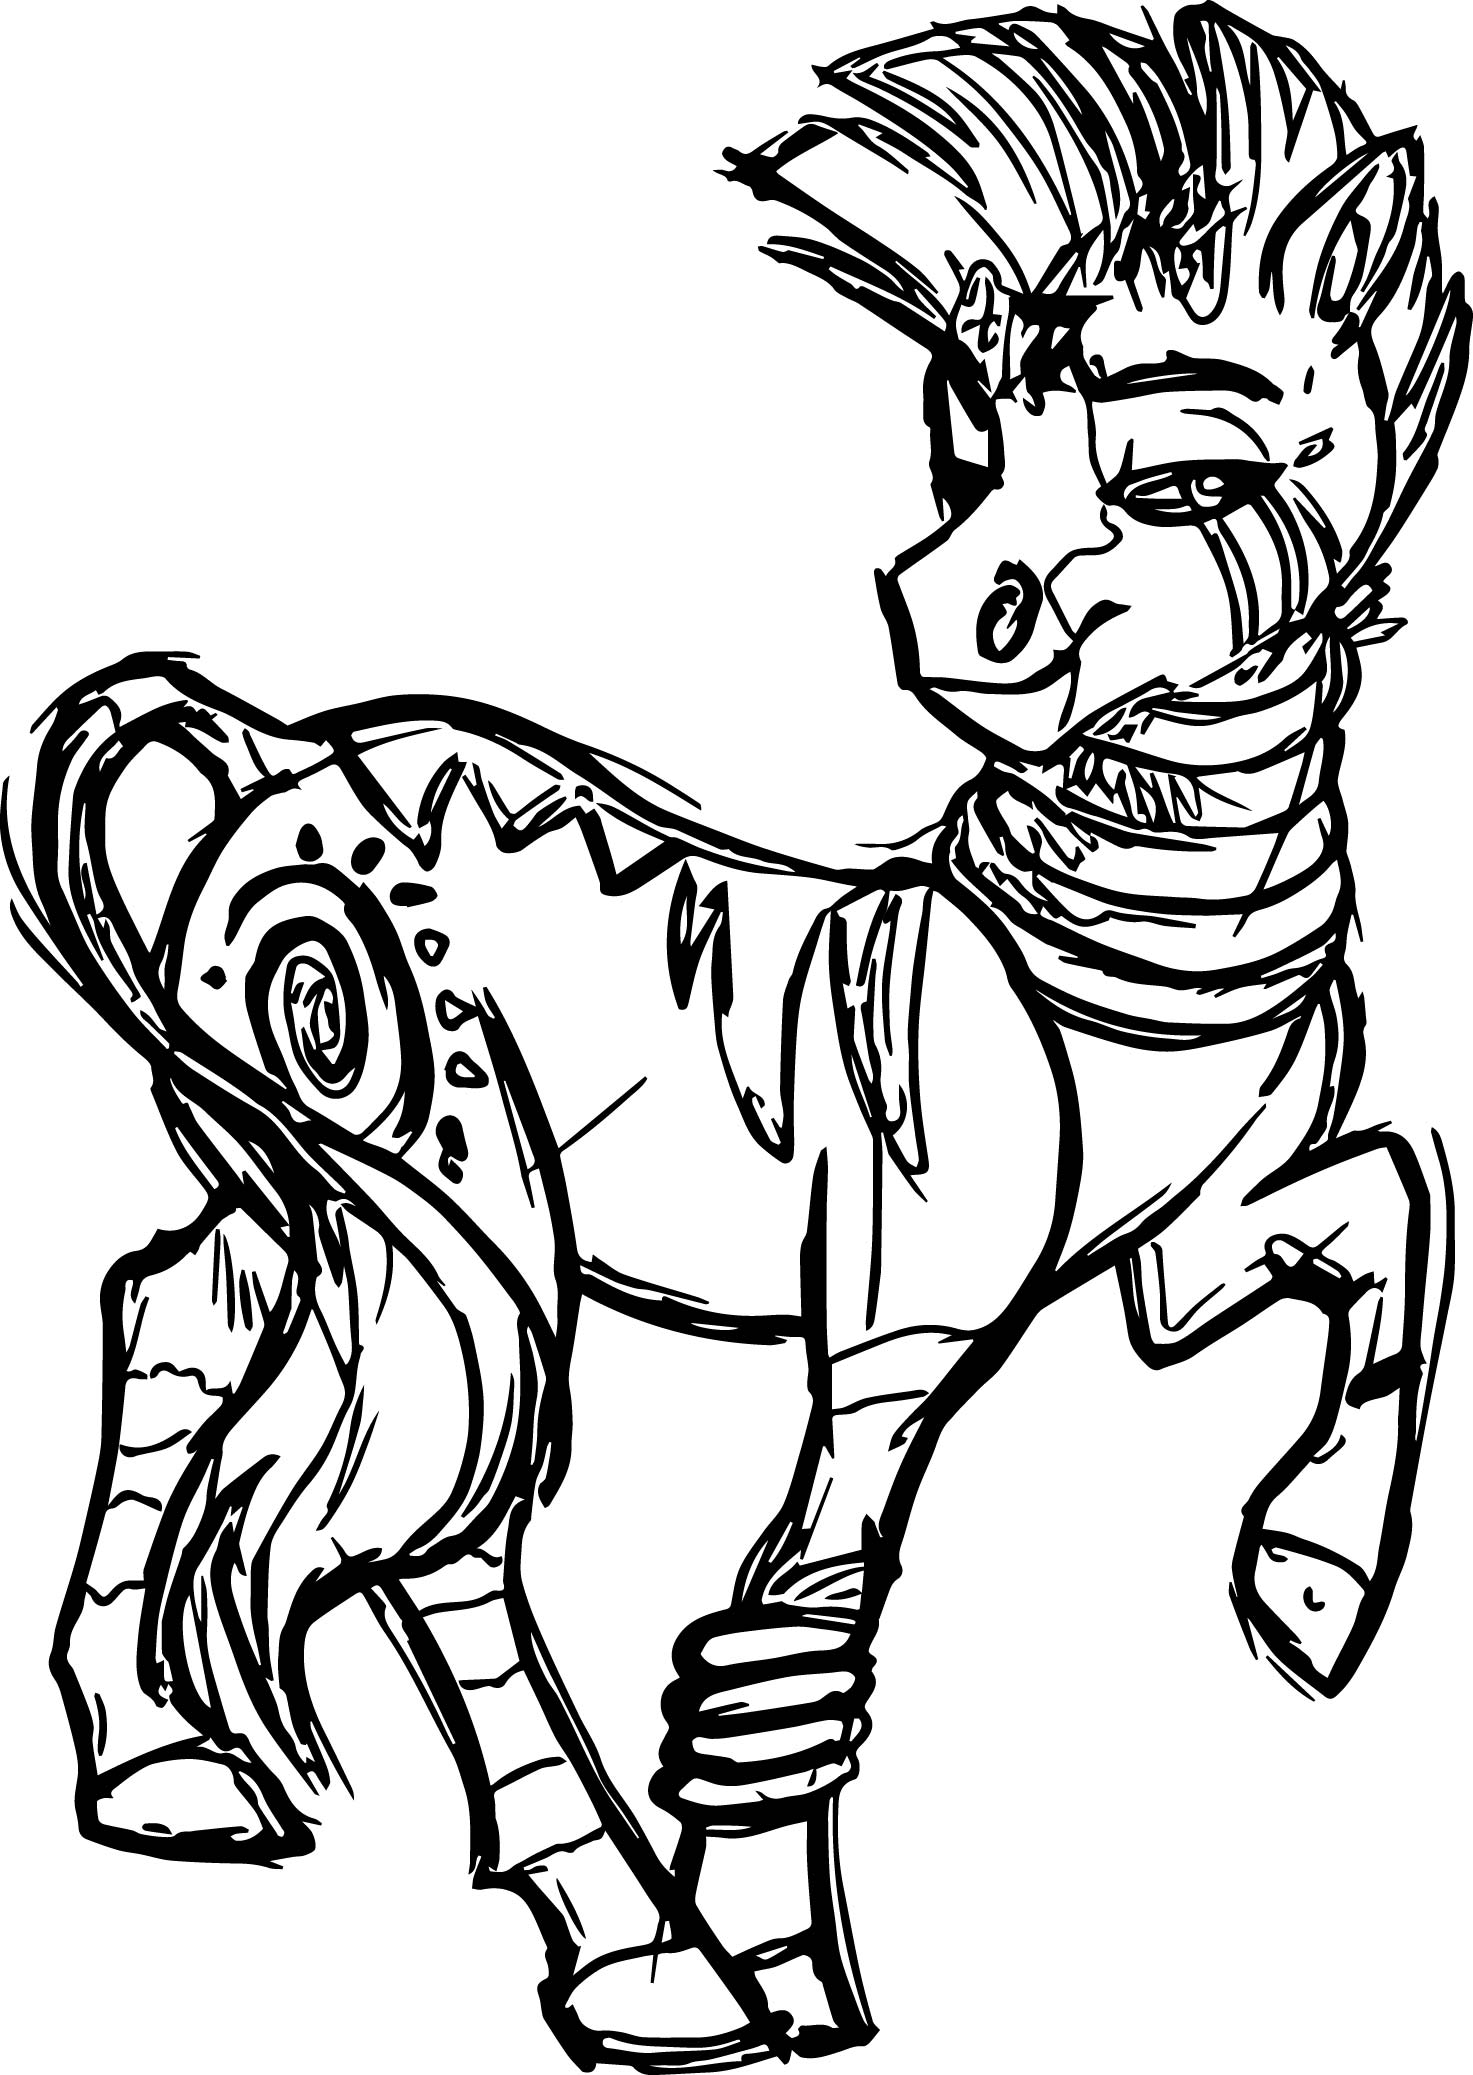 Zecora Request Coloring Page